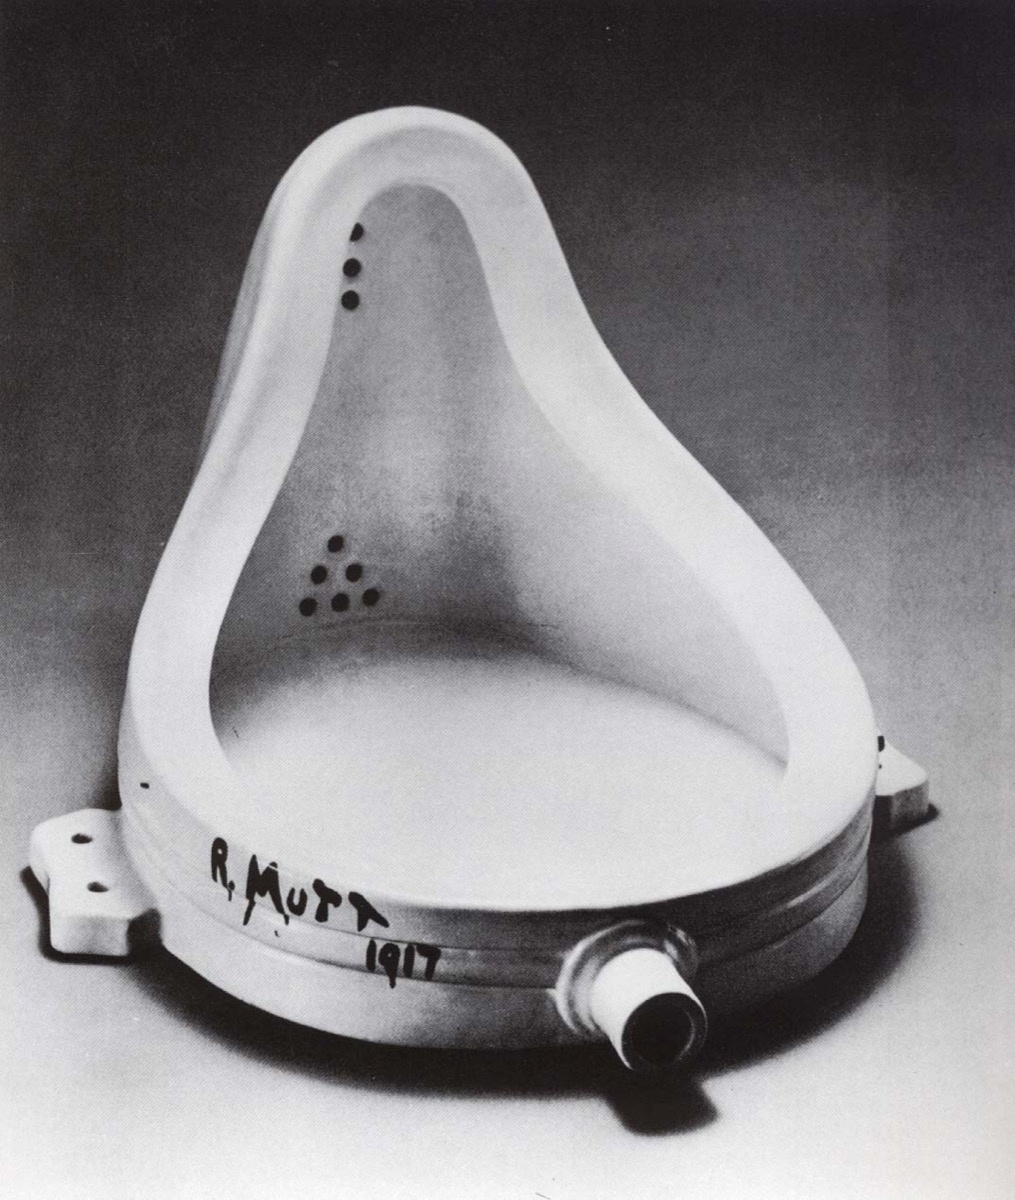 Image of Marcel Duchamp's Fountain, 1917, via Wikimedia Commons.